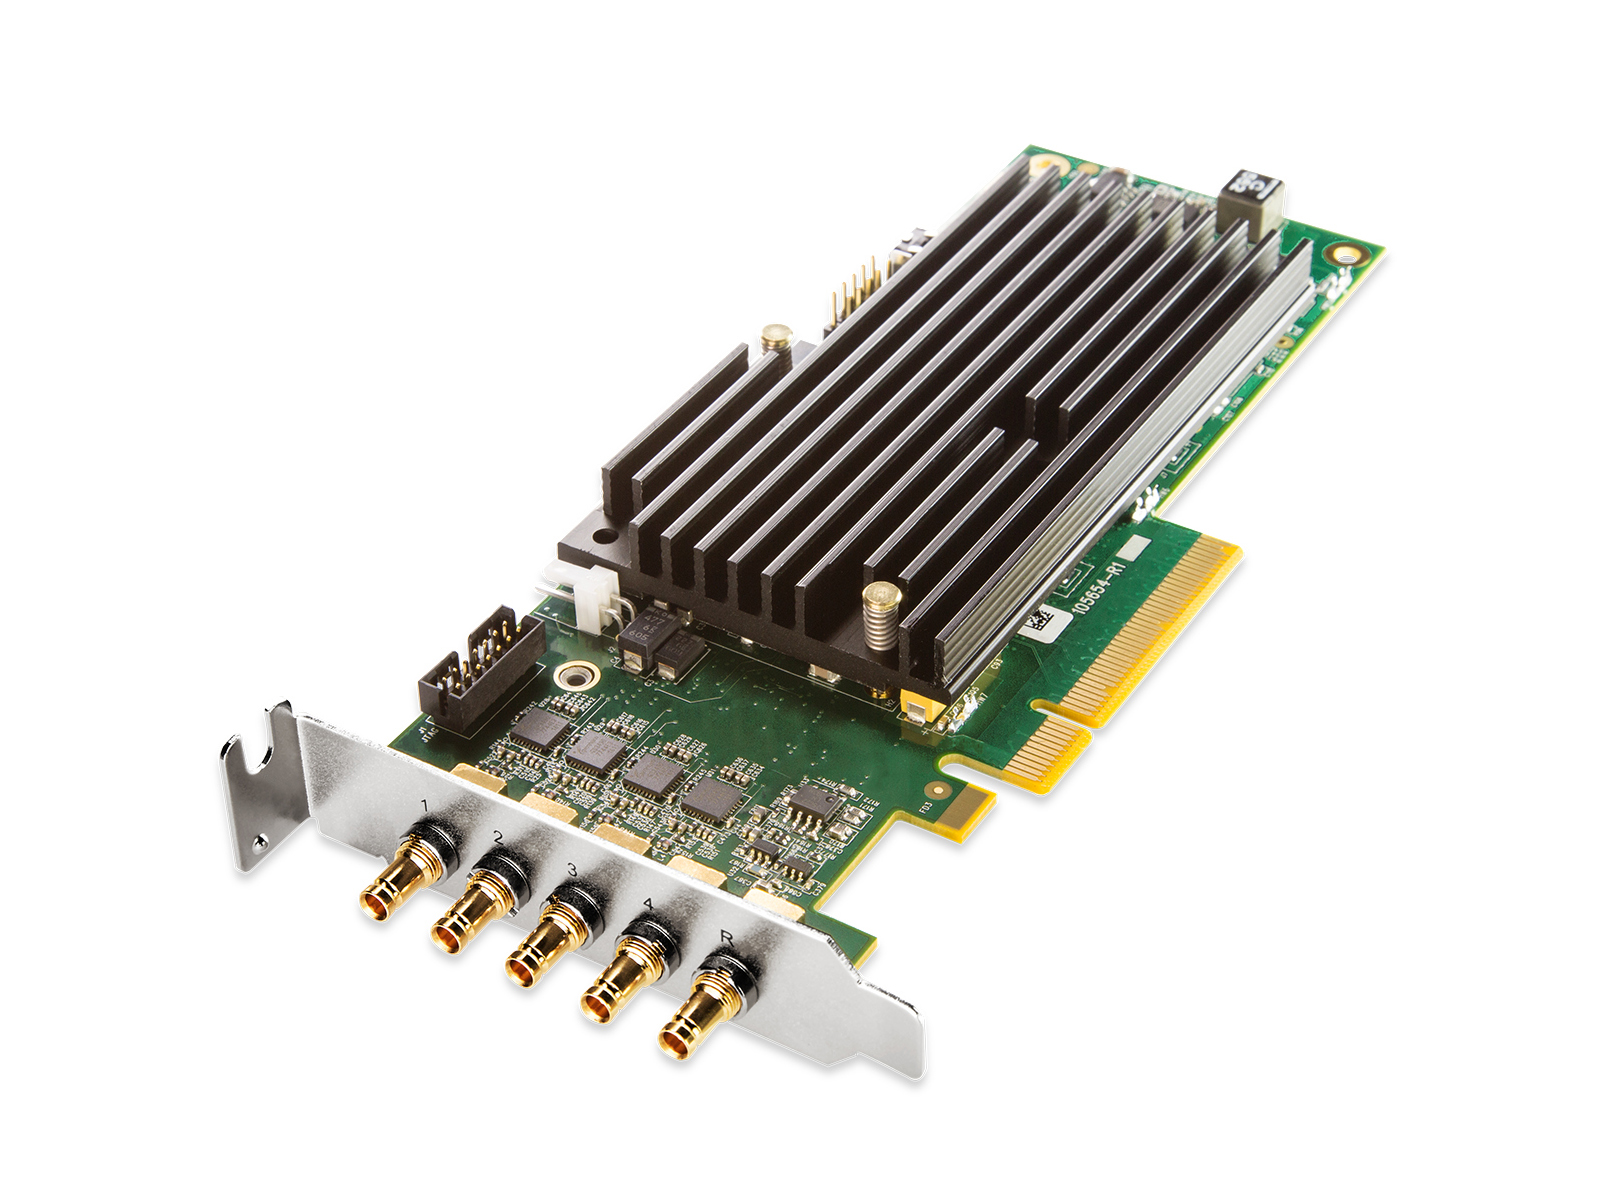 CRV44-S-NCF Corvid 44 with low profile PCIe bracket and passive heat sink/no cables by AJA